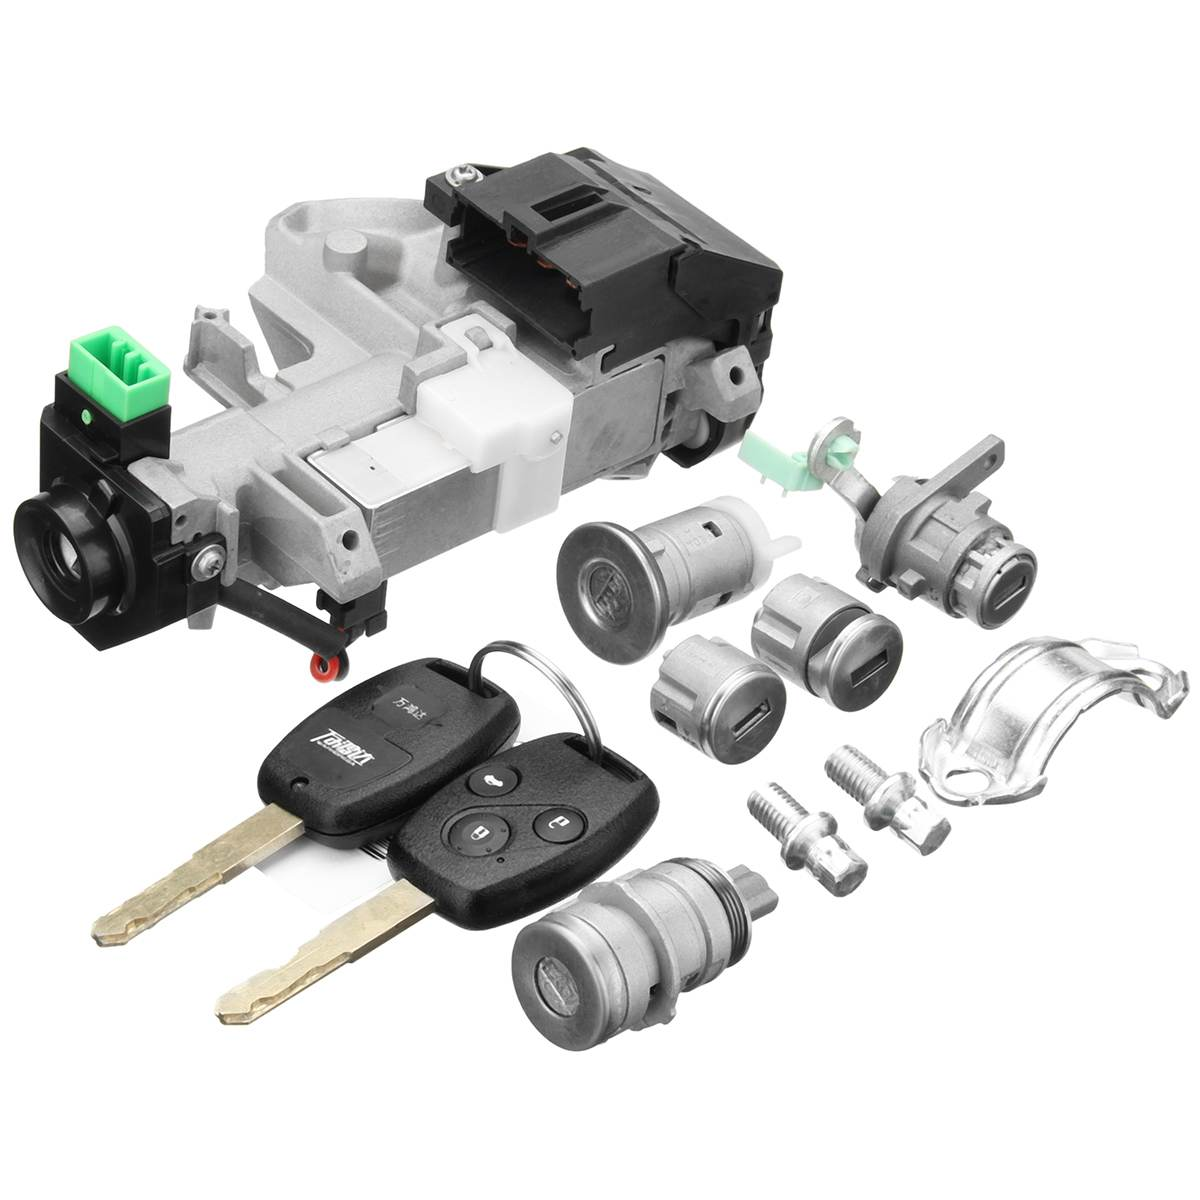 Ignition Switch Cylinder <font><b>Door</b></font> Lock Full Set w/Trans Key For Honda/Accord <font><b>2006</b></font> 2007 for <font><b>Civic</b></font> /Odyssey /Fit image